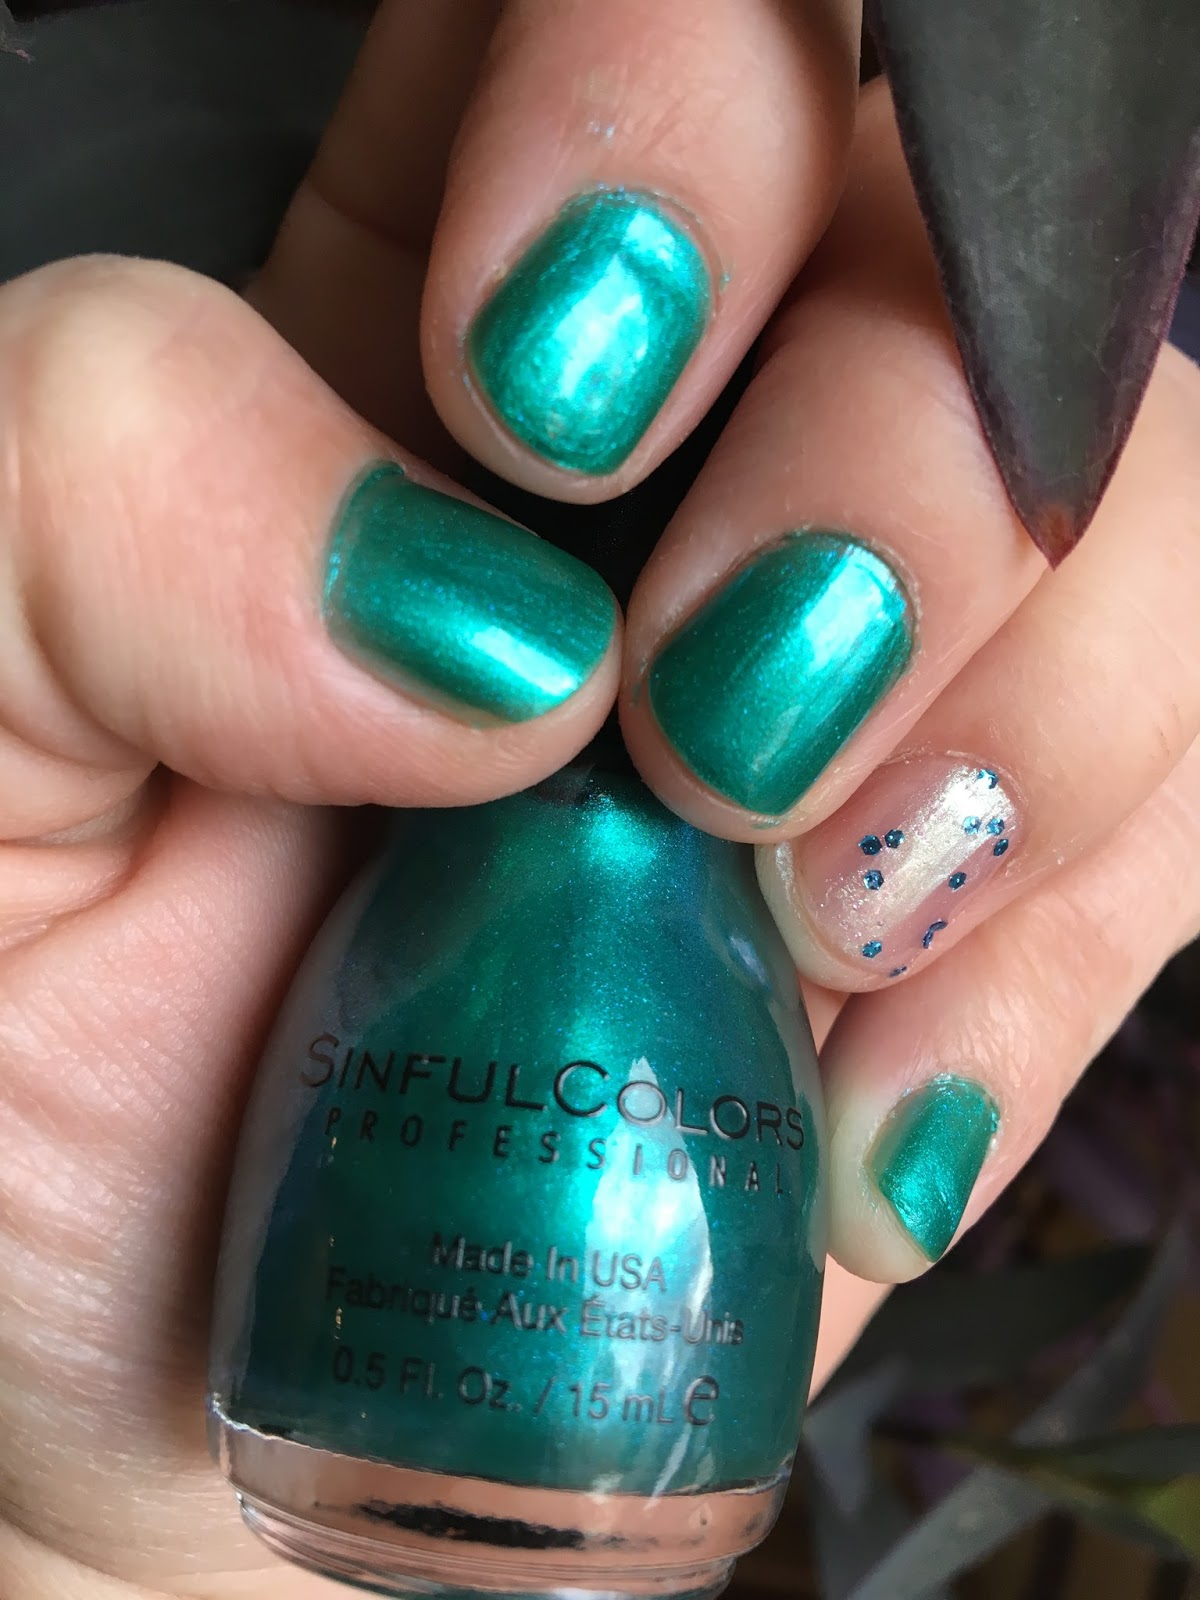 Health Amp Lifestyle Management Sinful Colors Nail Polish